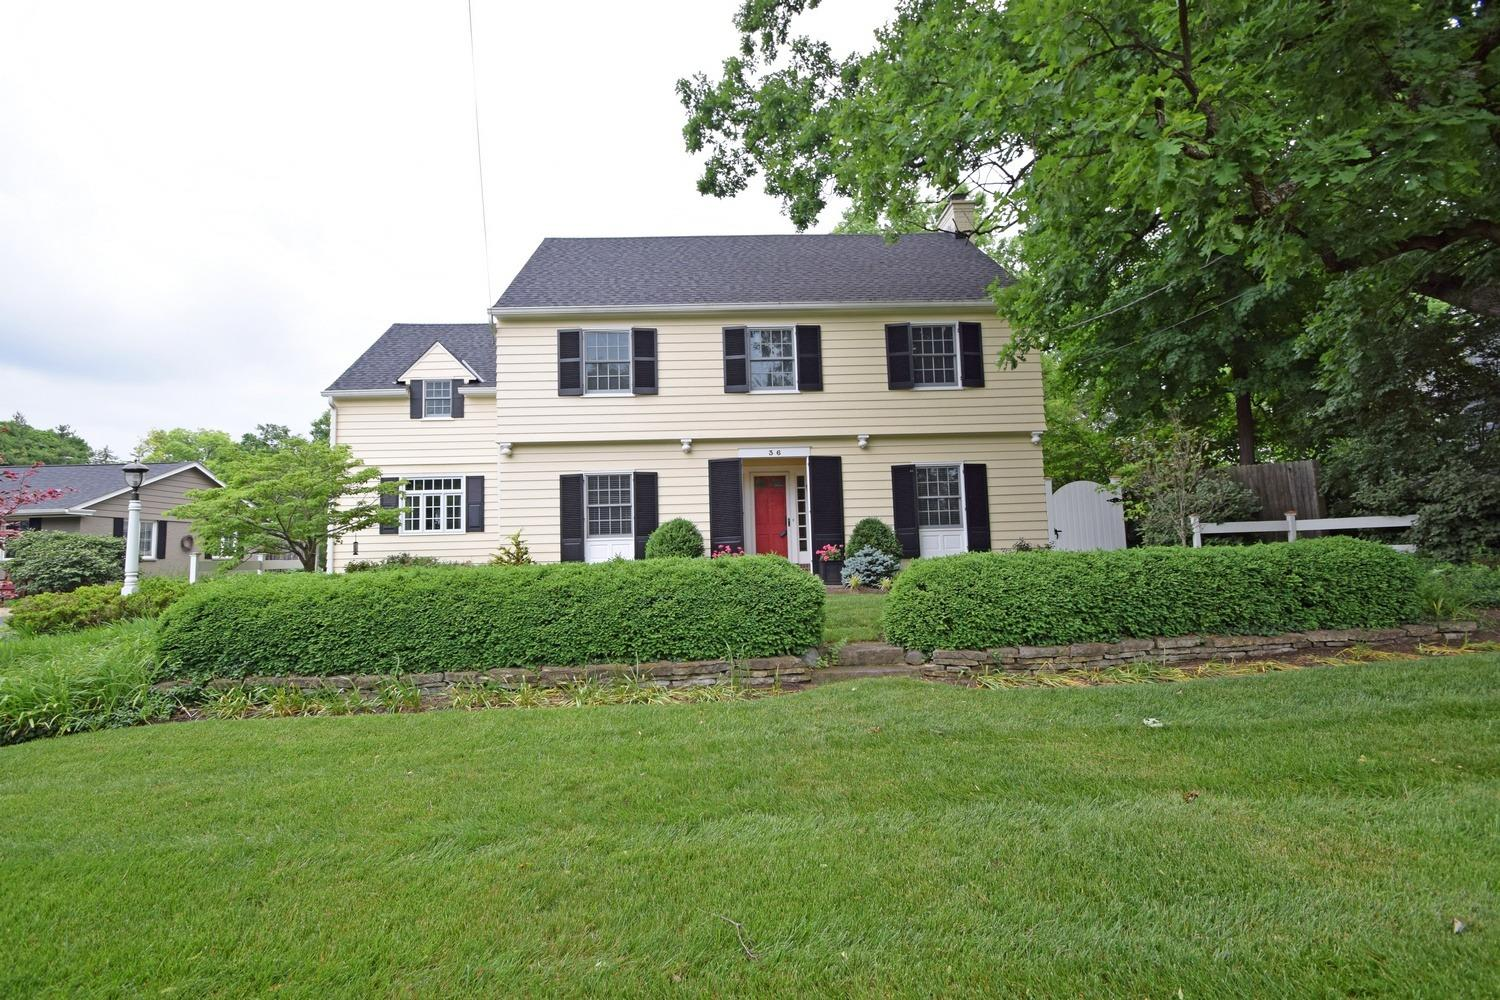 36 Reily Rd Wyoming, OH